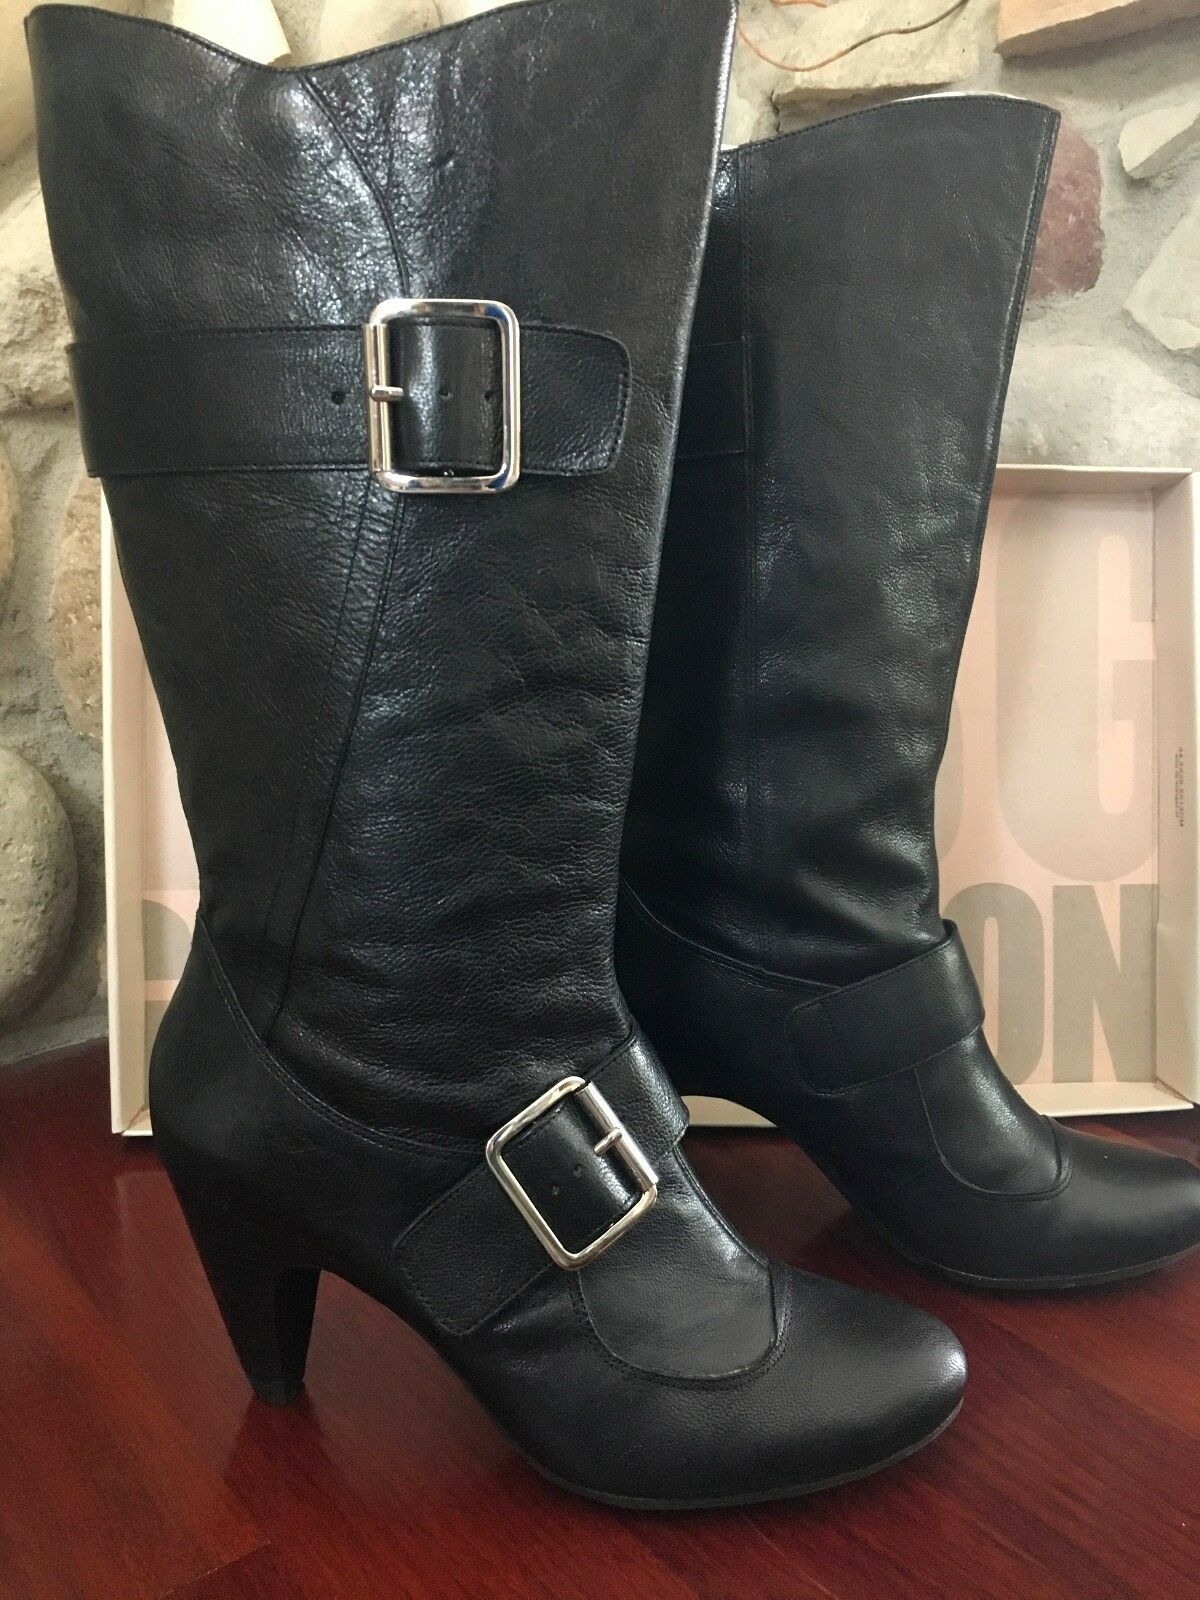 BCBG women's size 7.5 M tall black leather boots block heel with buckles